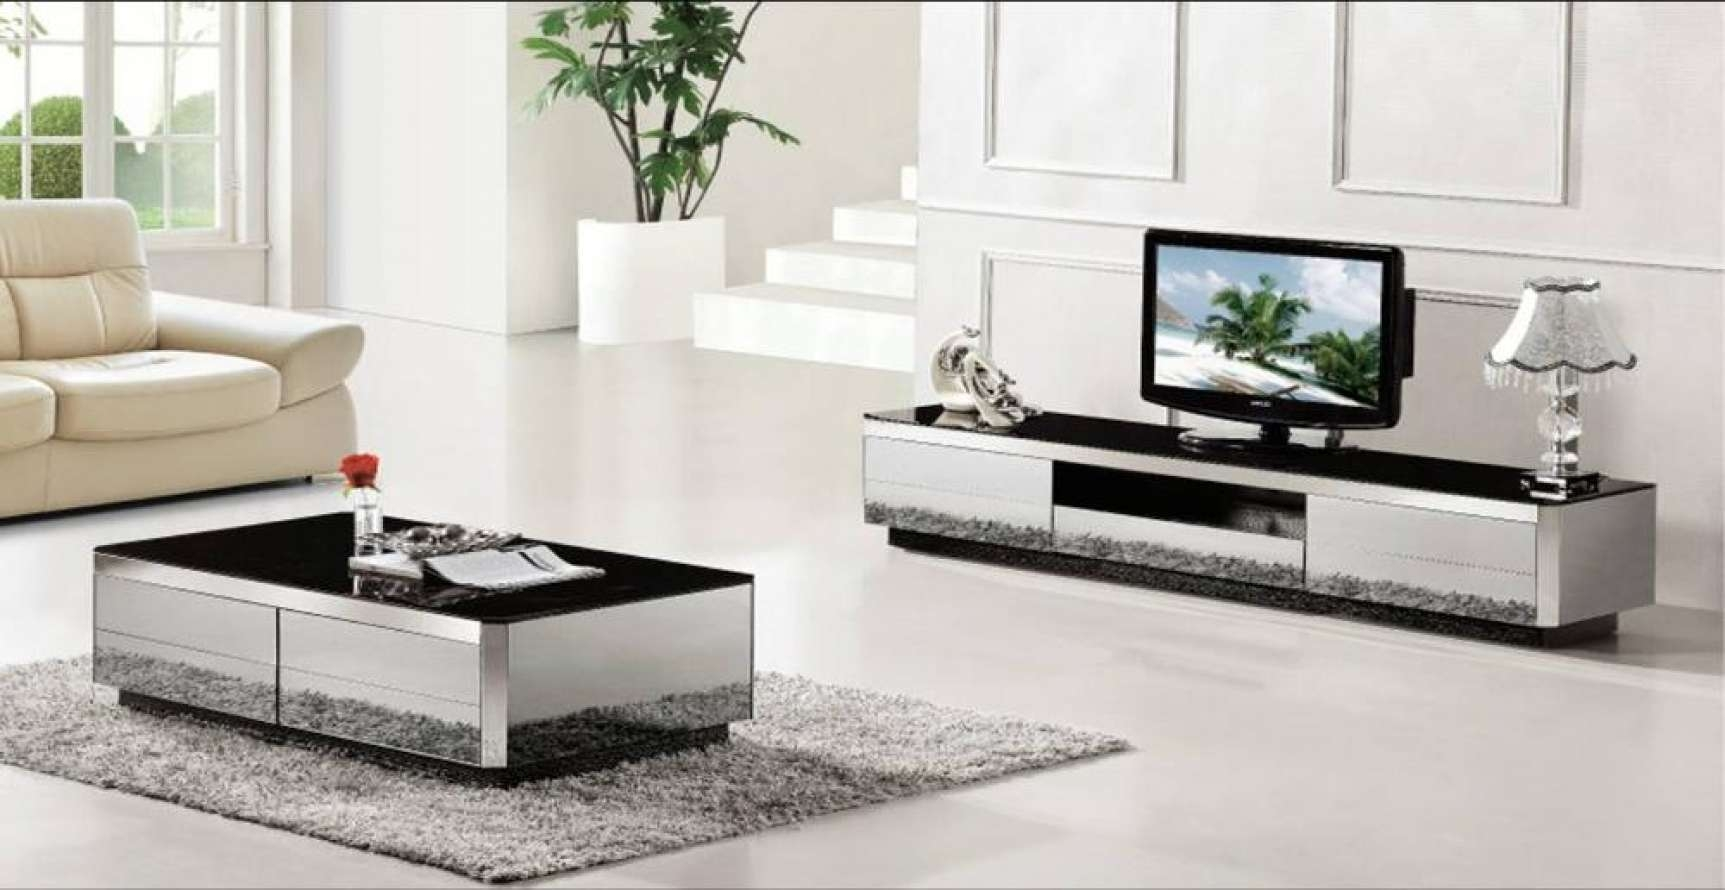 Coffee Table : Tv Stands Stand And Coffee Table Diy Matching Throughout Coffee Tables And Tv Stands Matching (View 4 of 15)